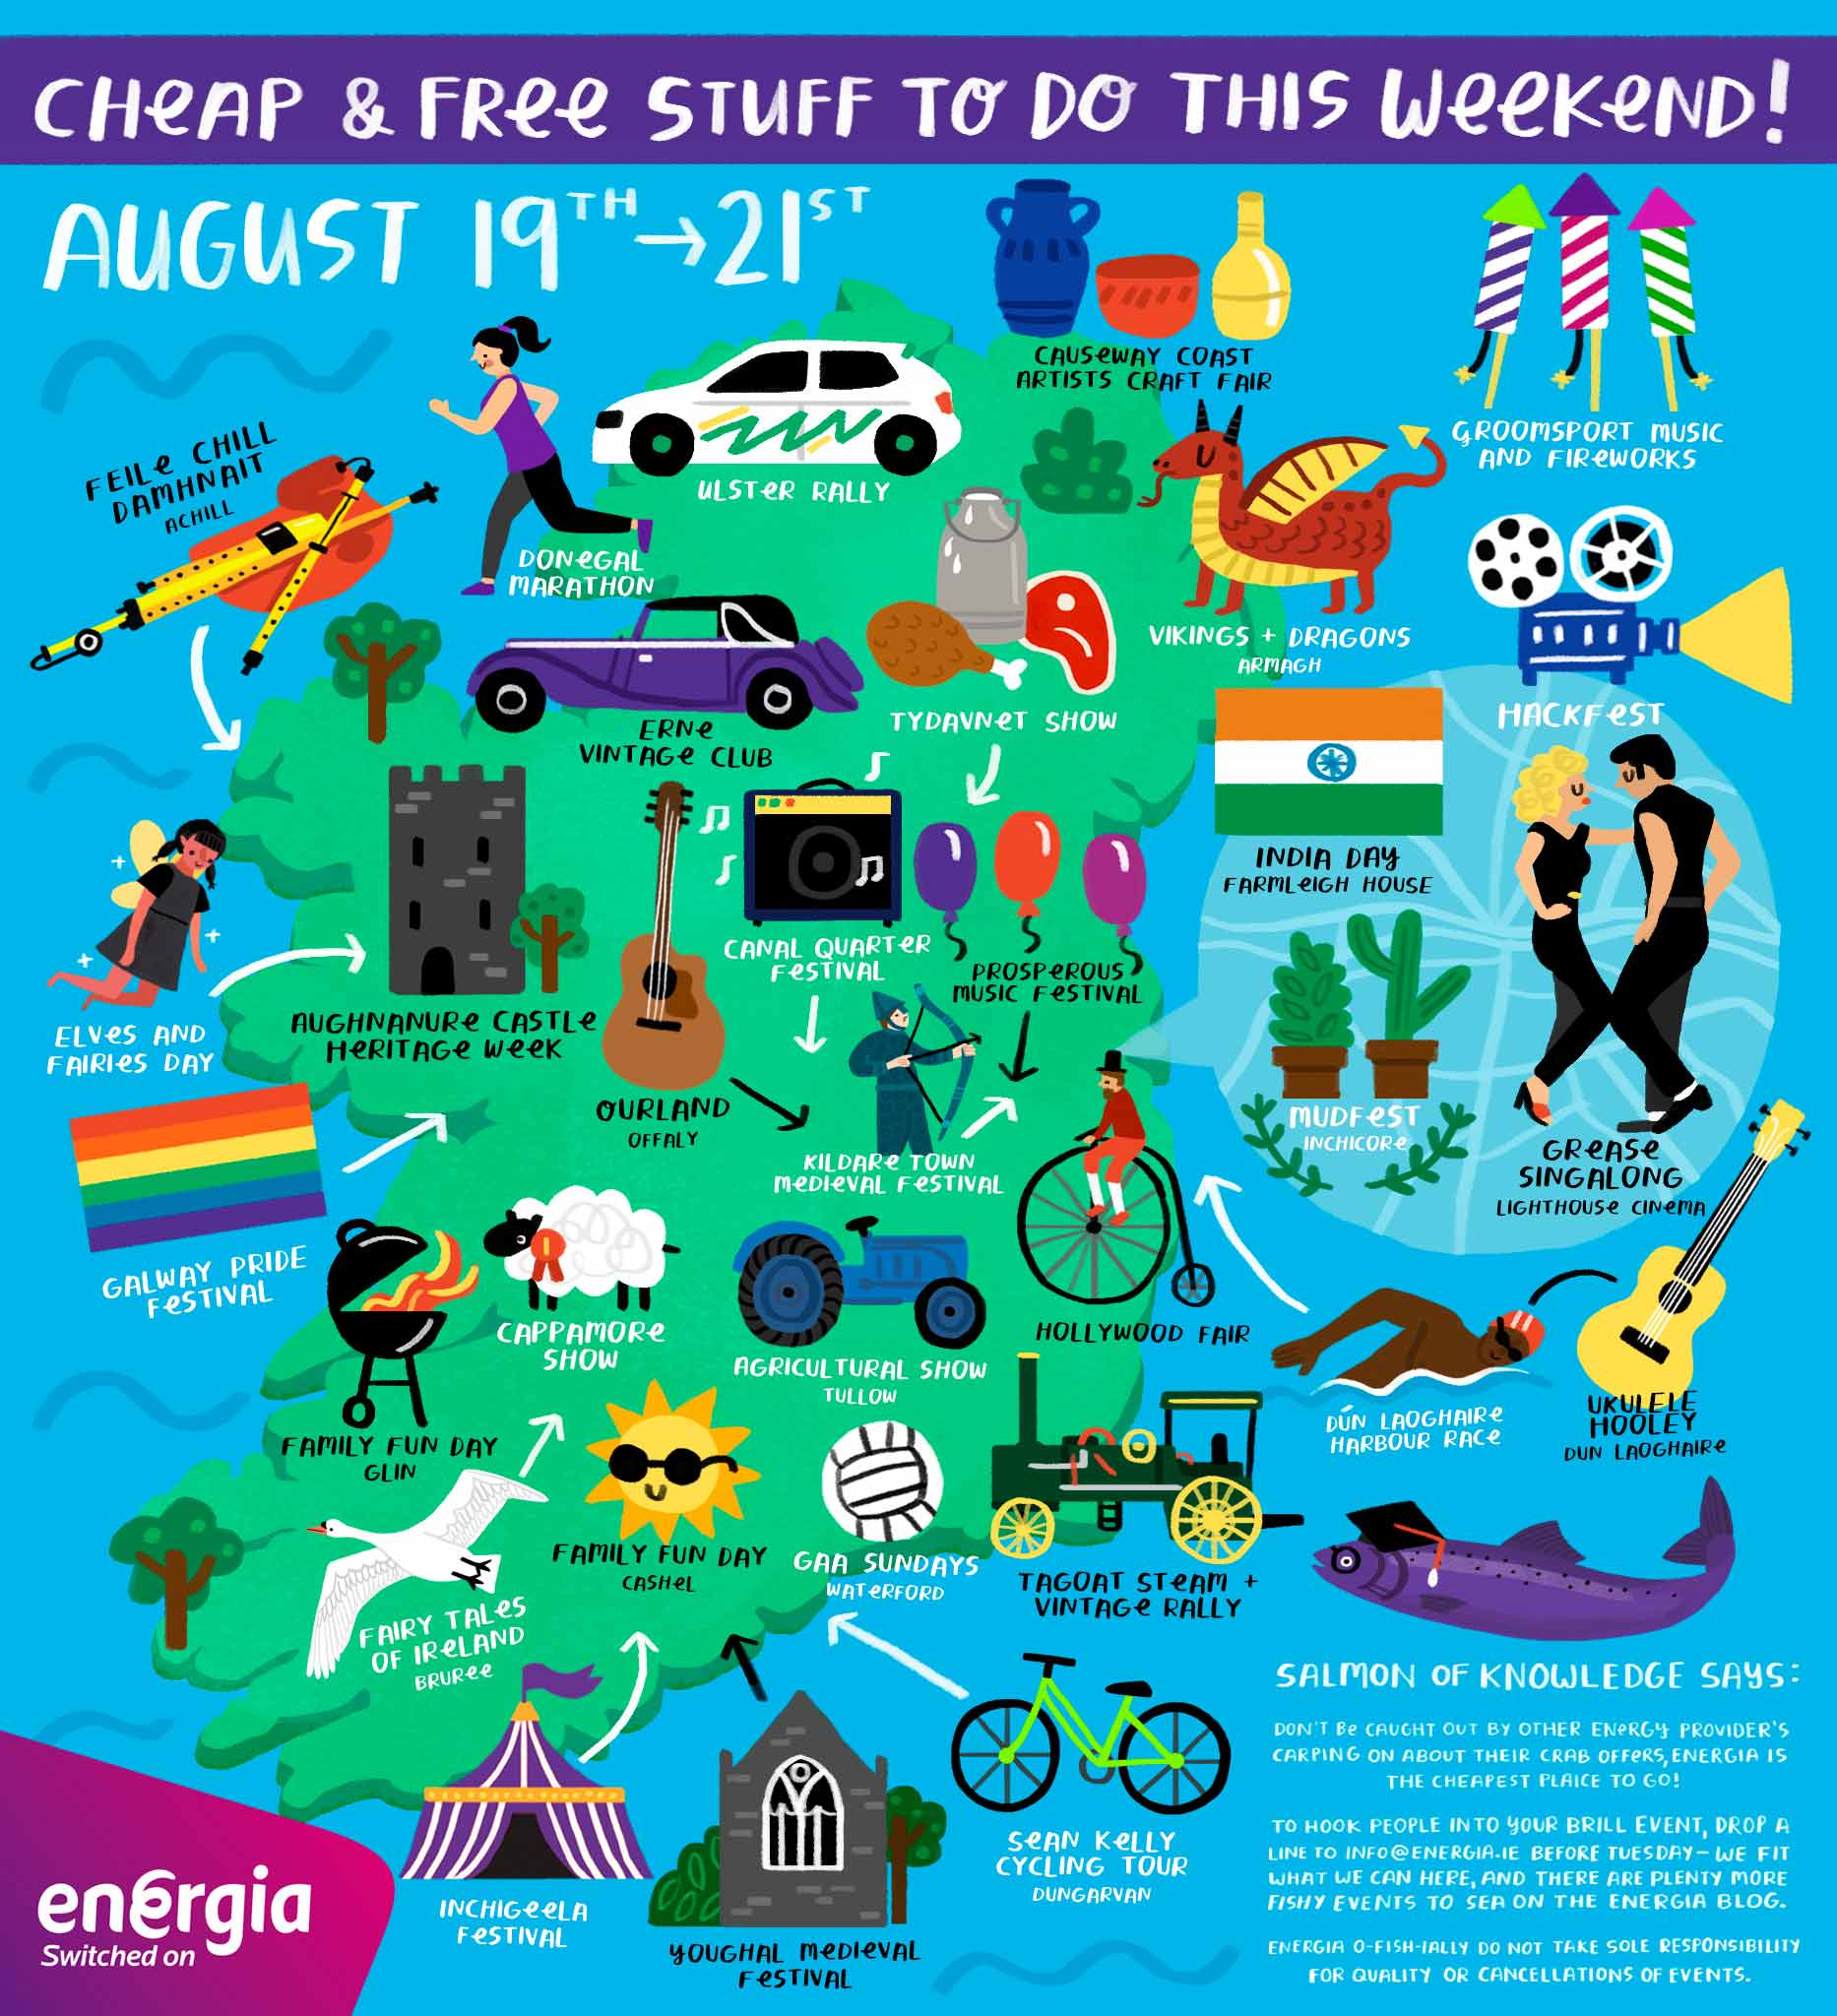 Cheap & Free stuff to do this weekend 19th - 21st August